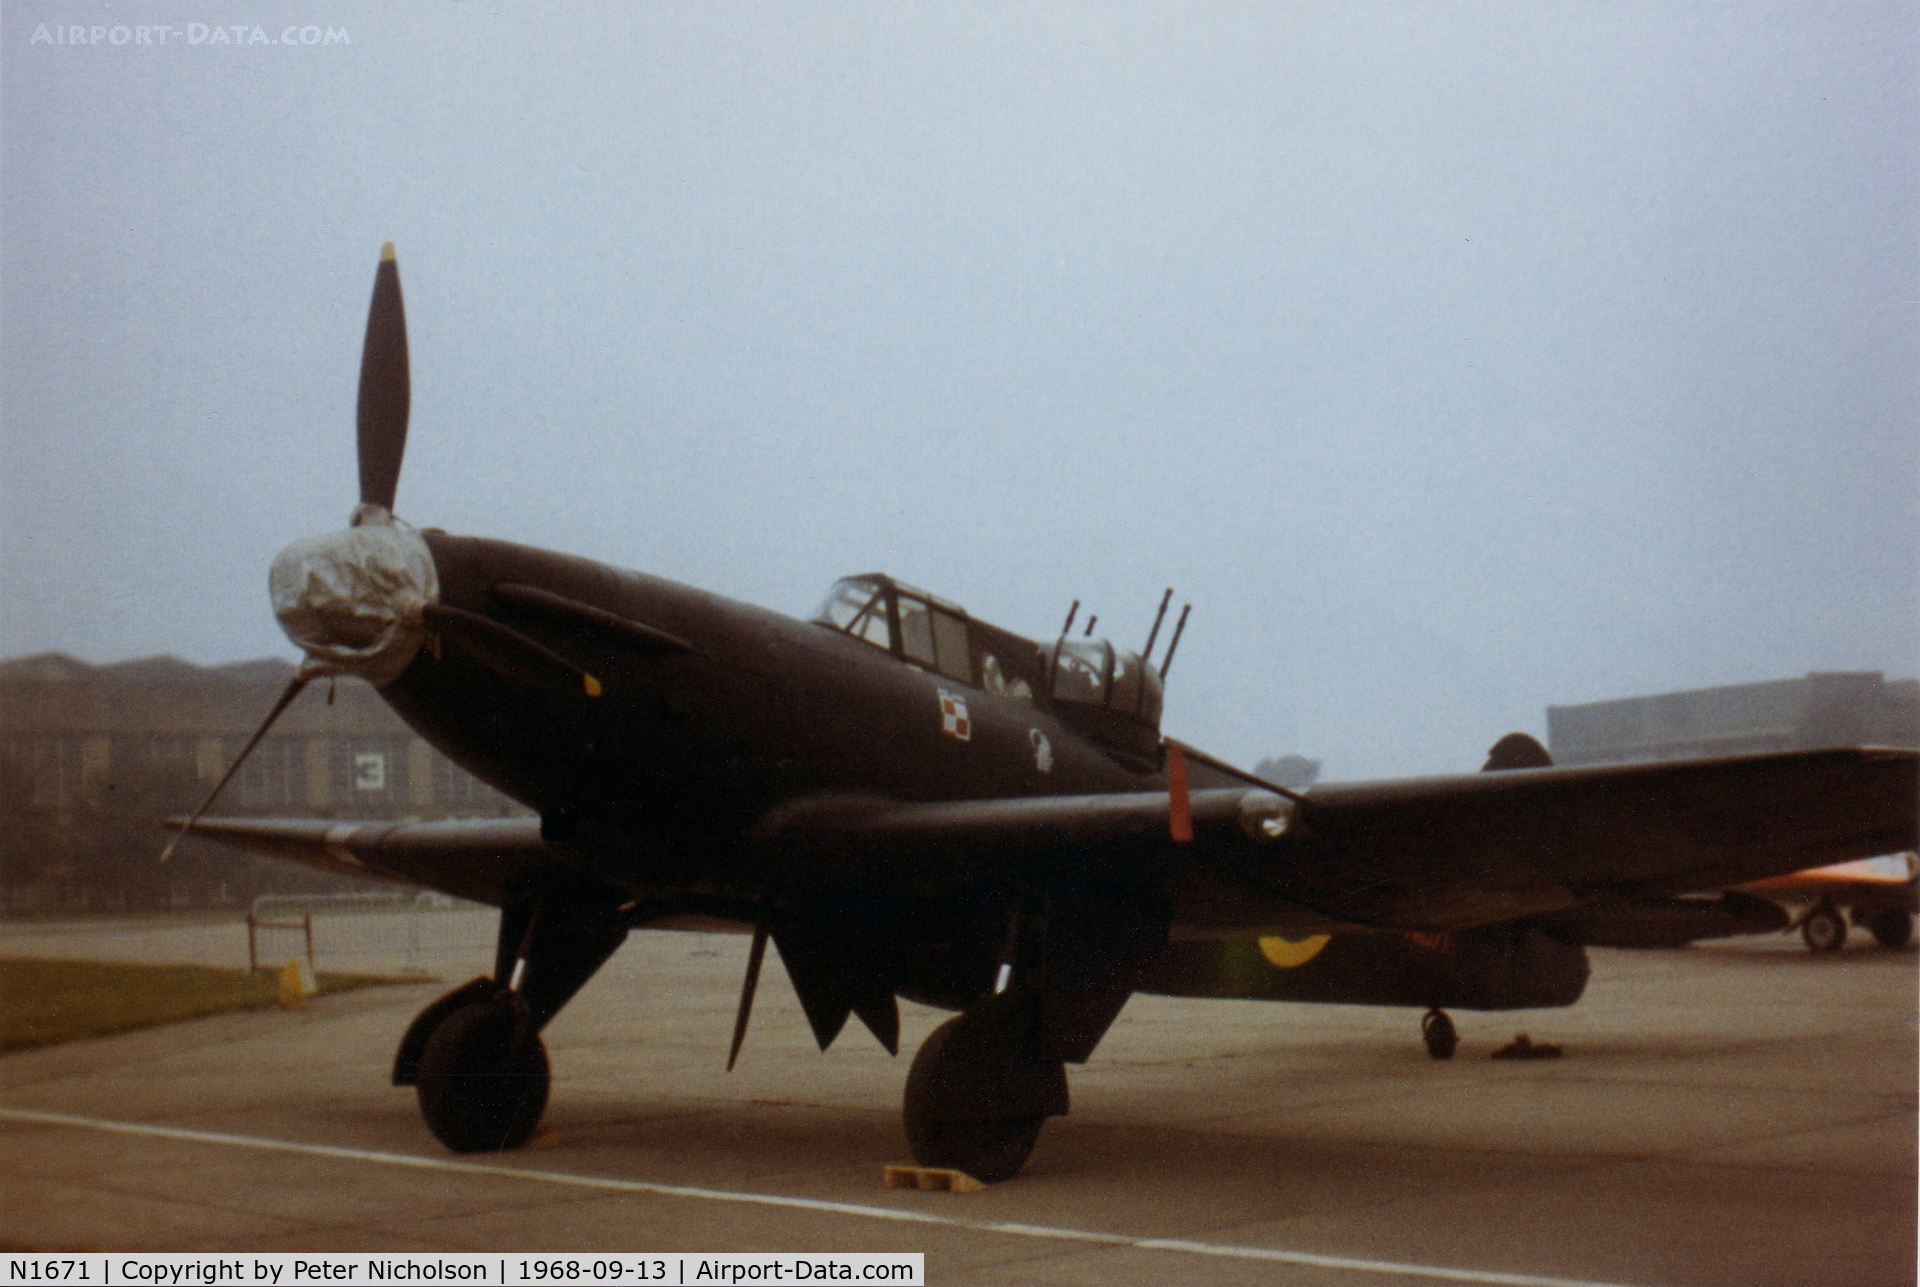 N1671, 1938 Boulton Paul Defiant I C/N Not found N1671, Boulton-Paul Defiant 1 in 307 Squadron markings on display at the 1968 RAF Finningley Airshow. It was then part of the Station Collection and now preserved at the RAF Museum at Hendon.